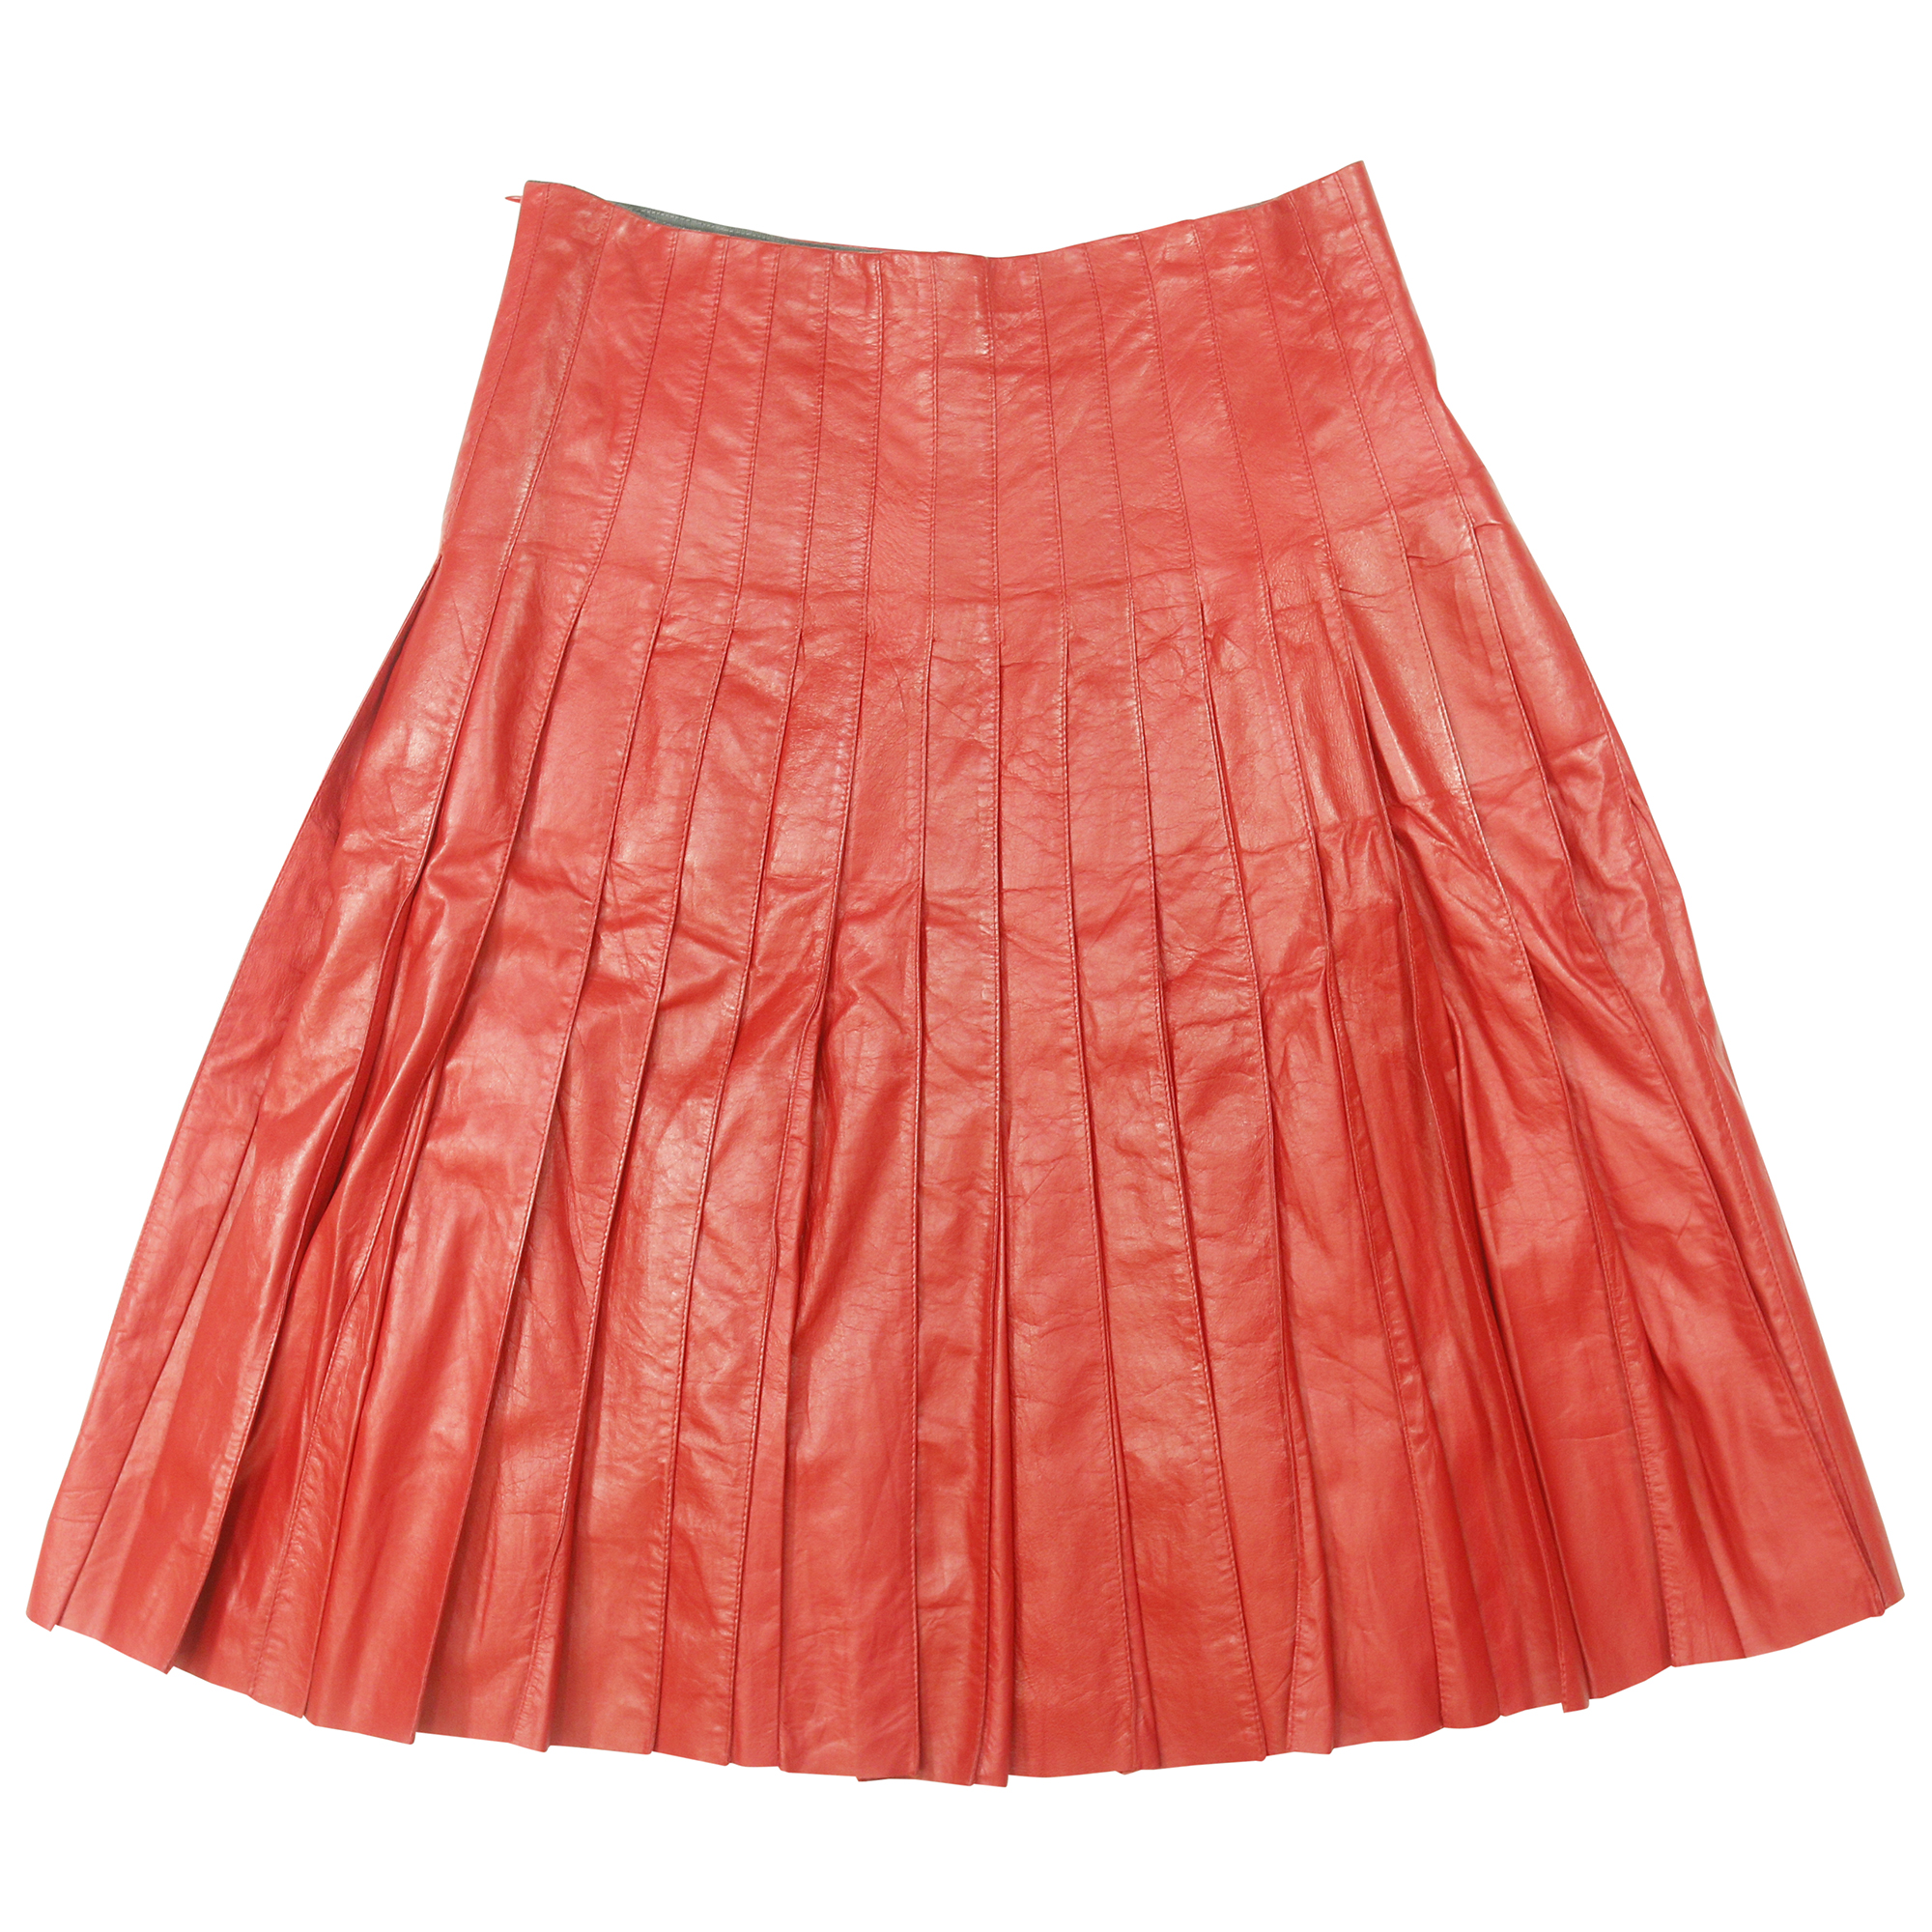 a7a2c89cf Authentic Second Hand Marc Jacobs Leather Pleated Skirt (PSS-014-00006) -  THE FIFTH COLLECTION